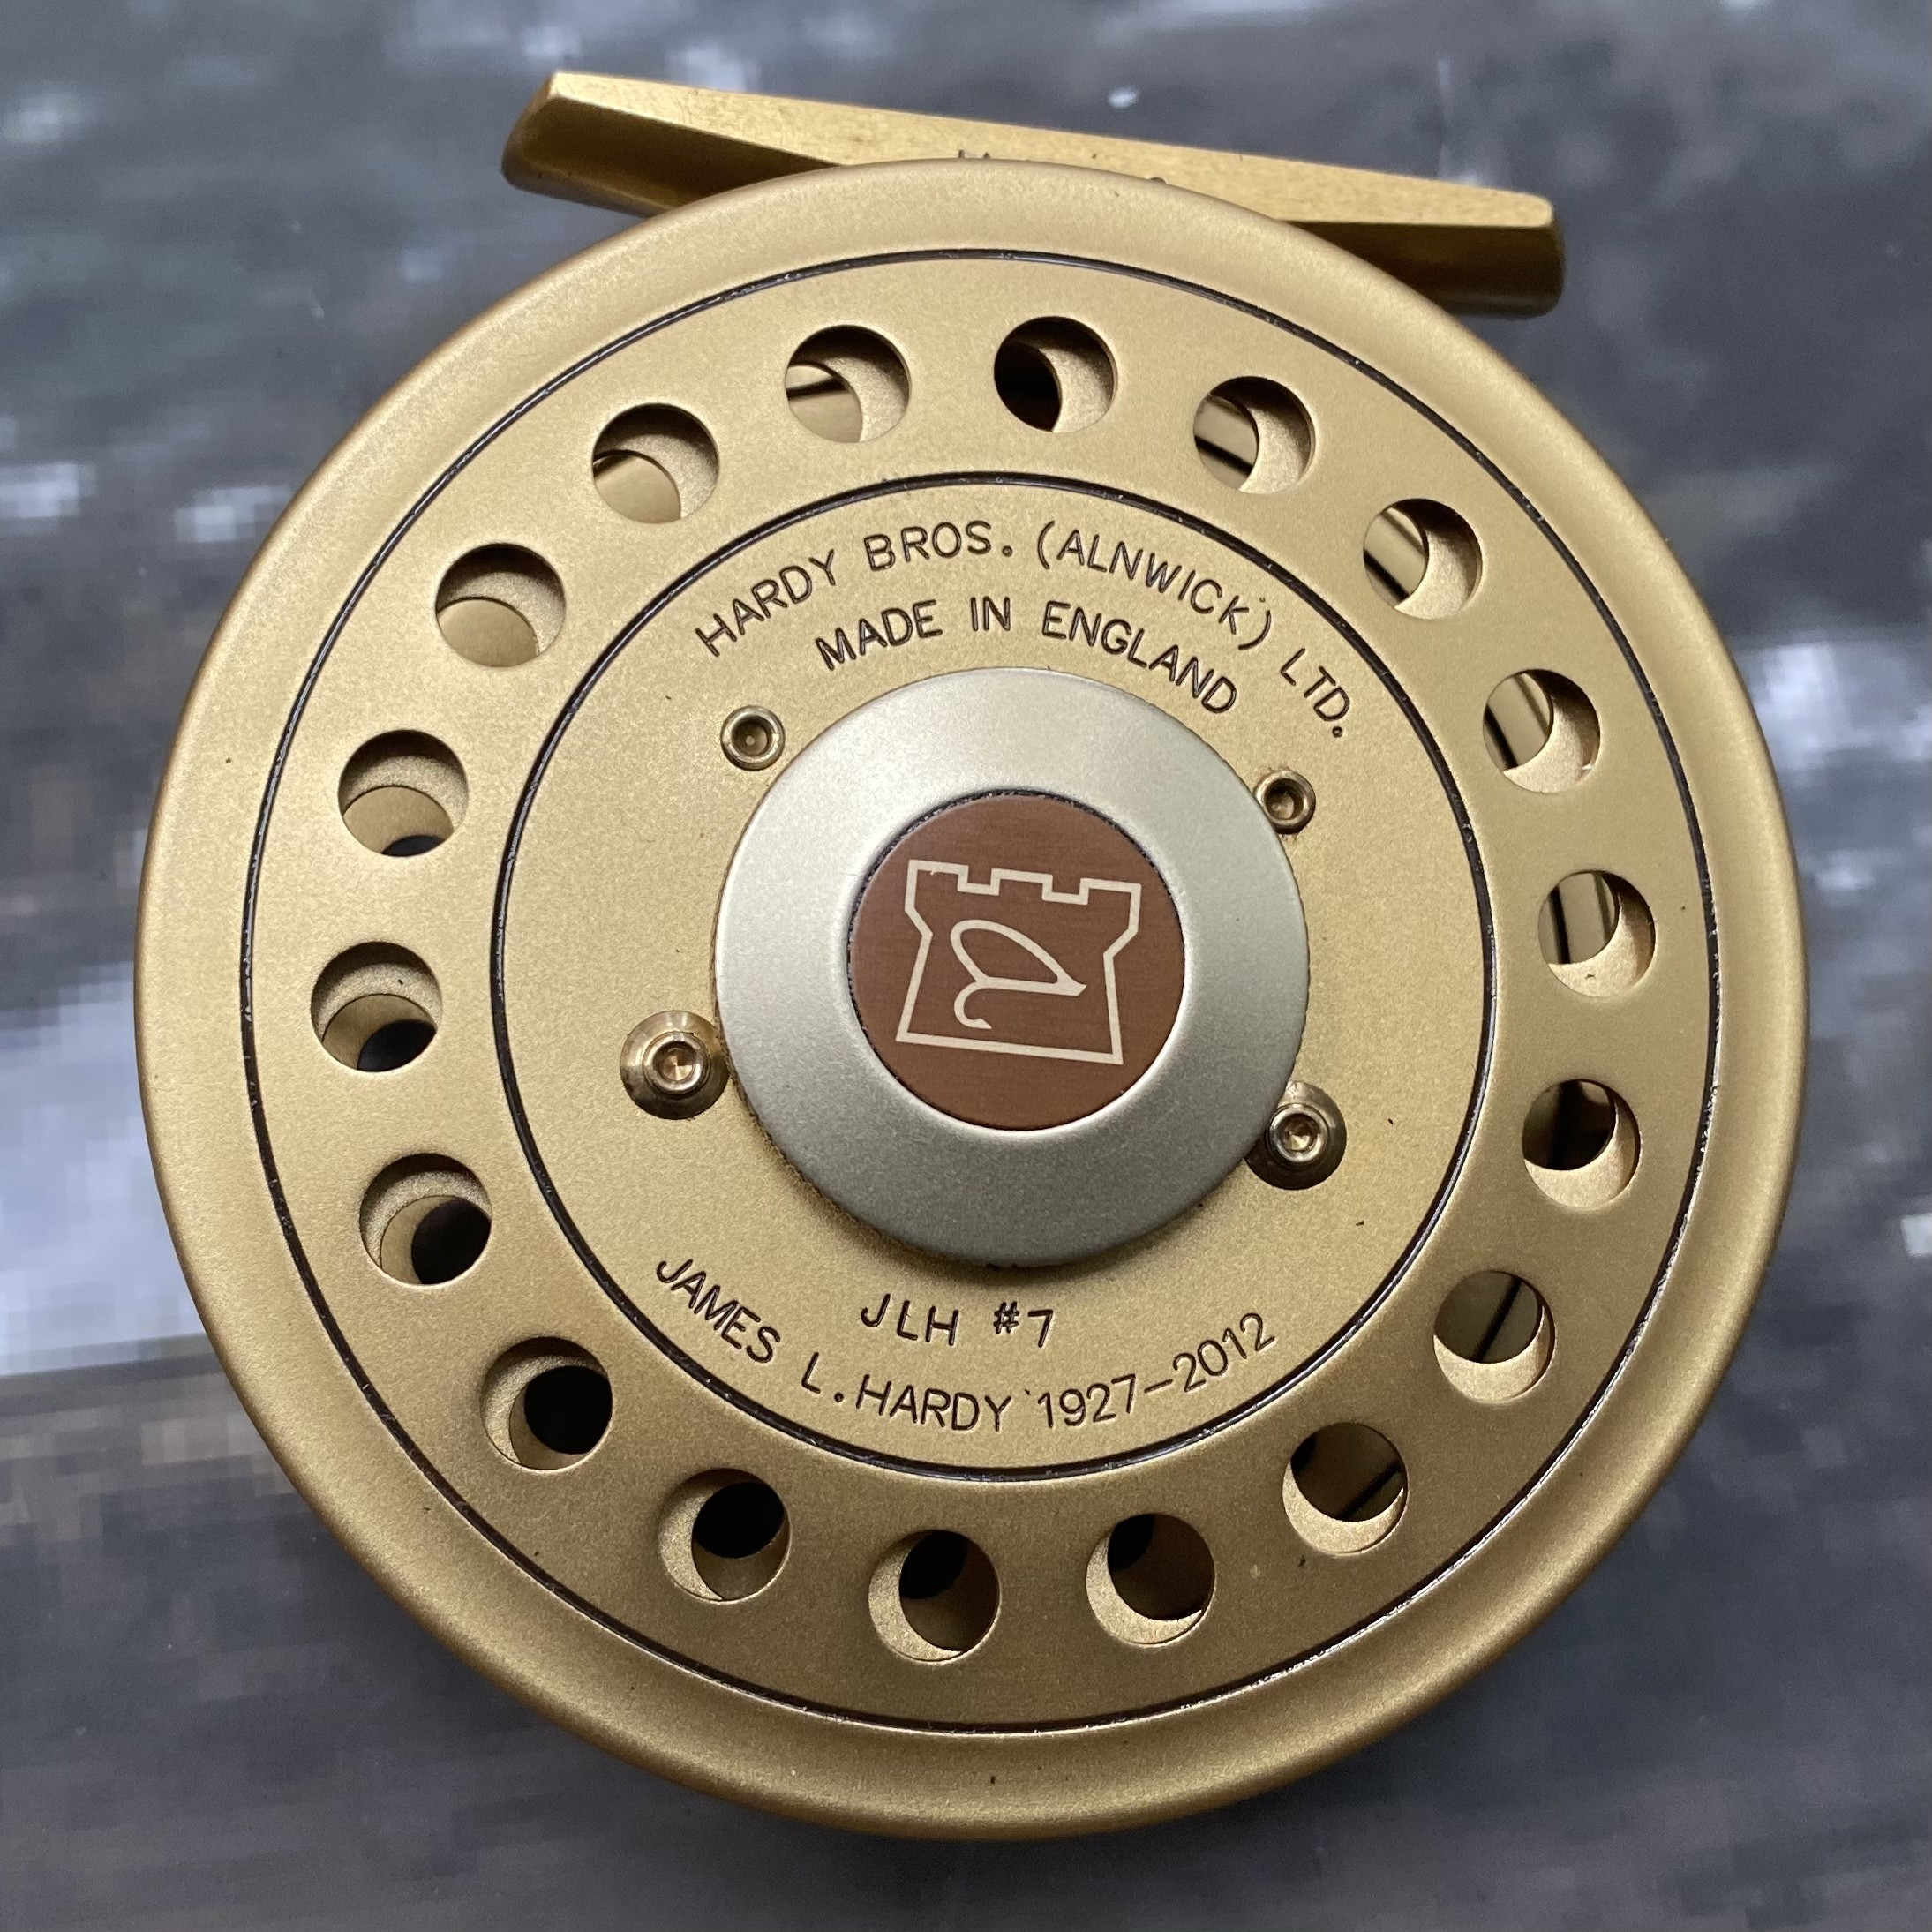 The JLH #7 Commemorative Fly Reel MADE IN ENGLAND - LIMITED EDITION